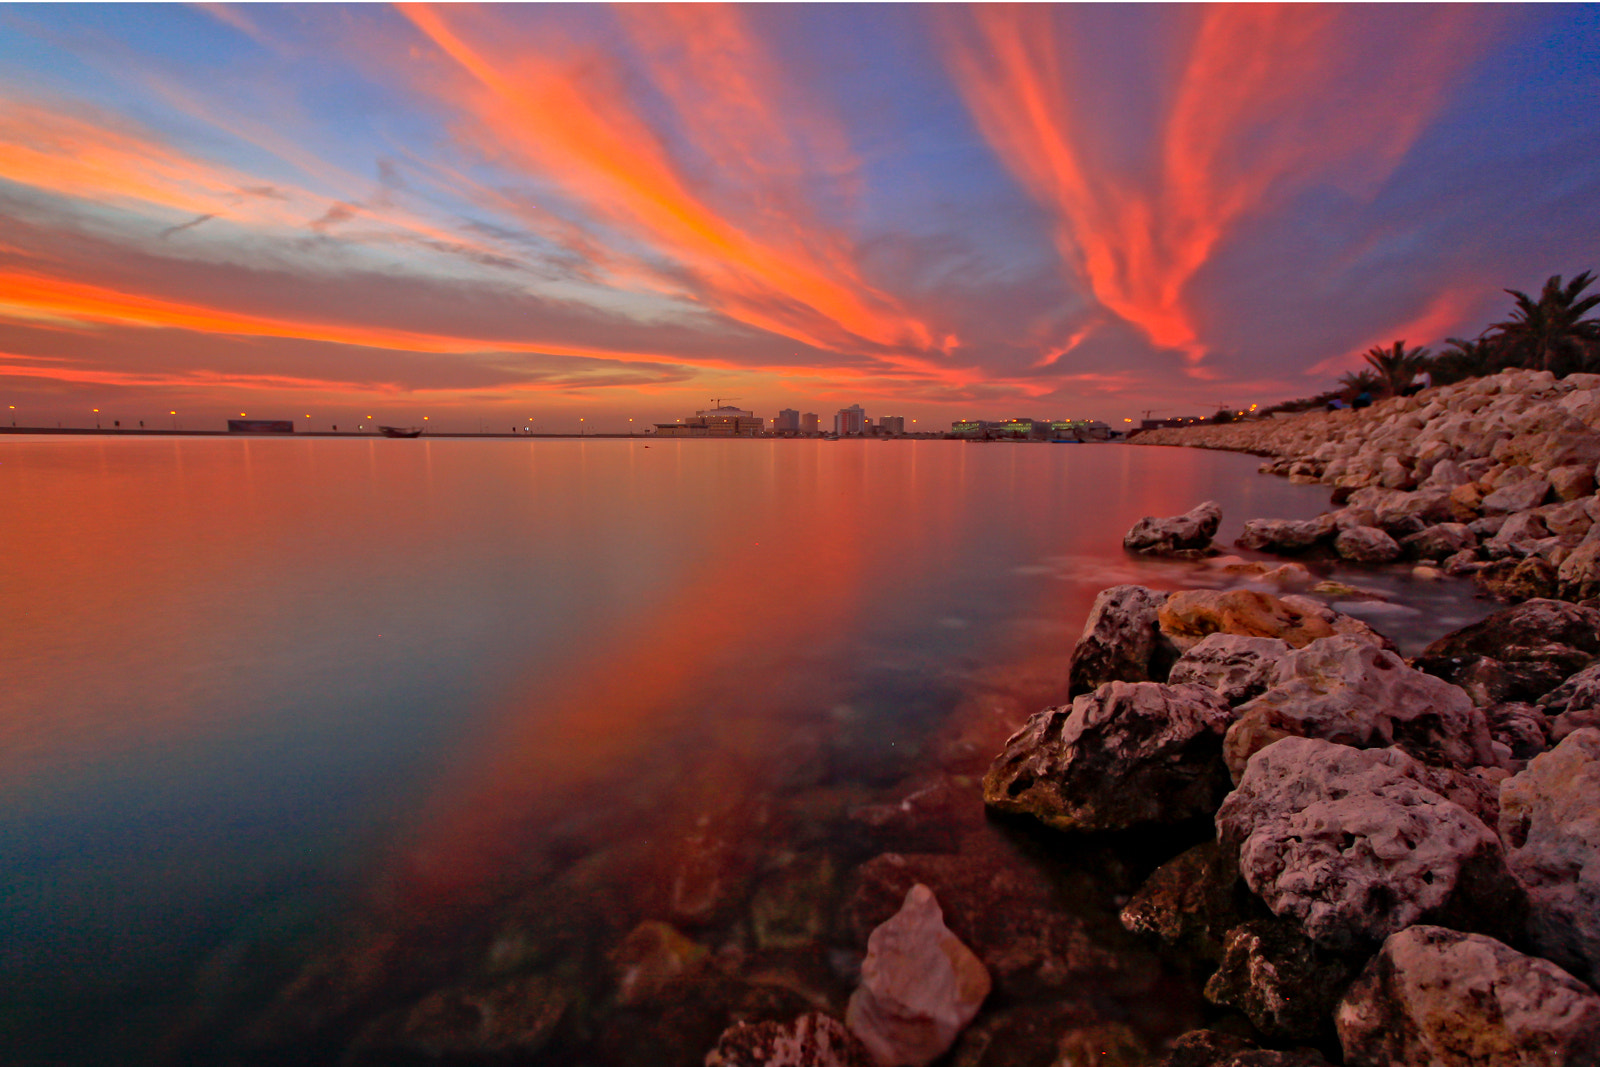 Photograph fire in the sky by Helminadia Ranford on 500px